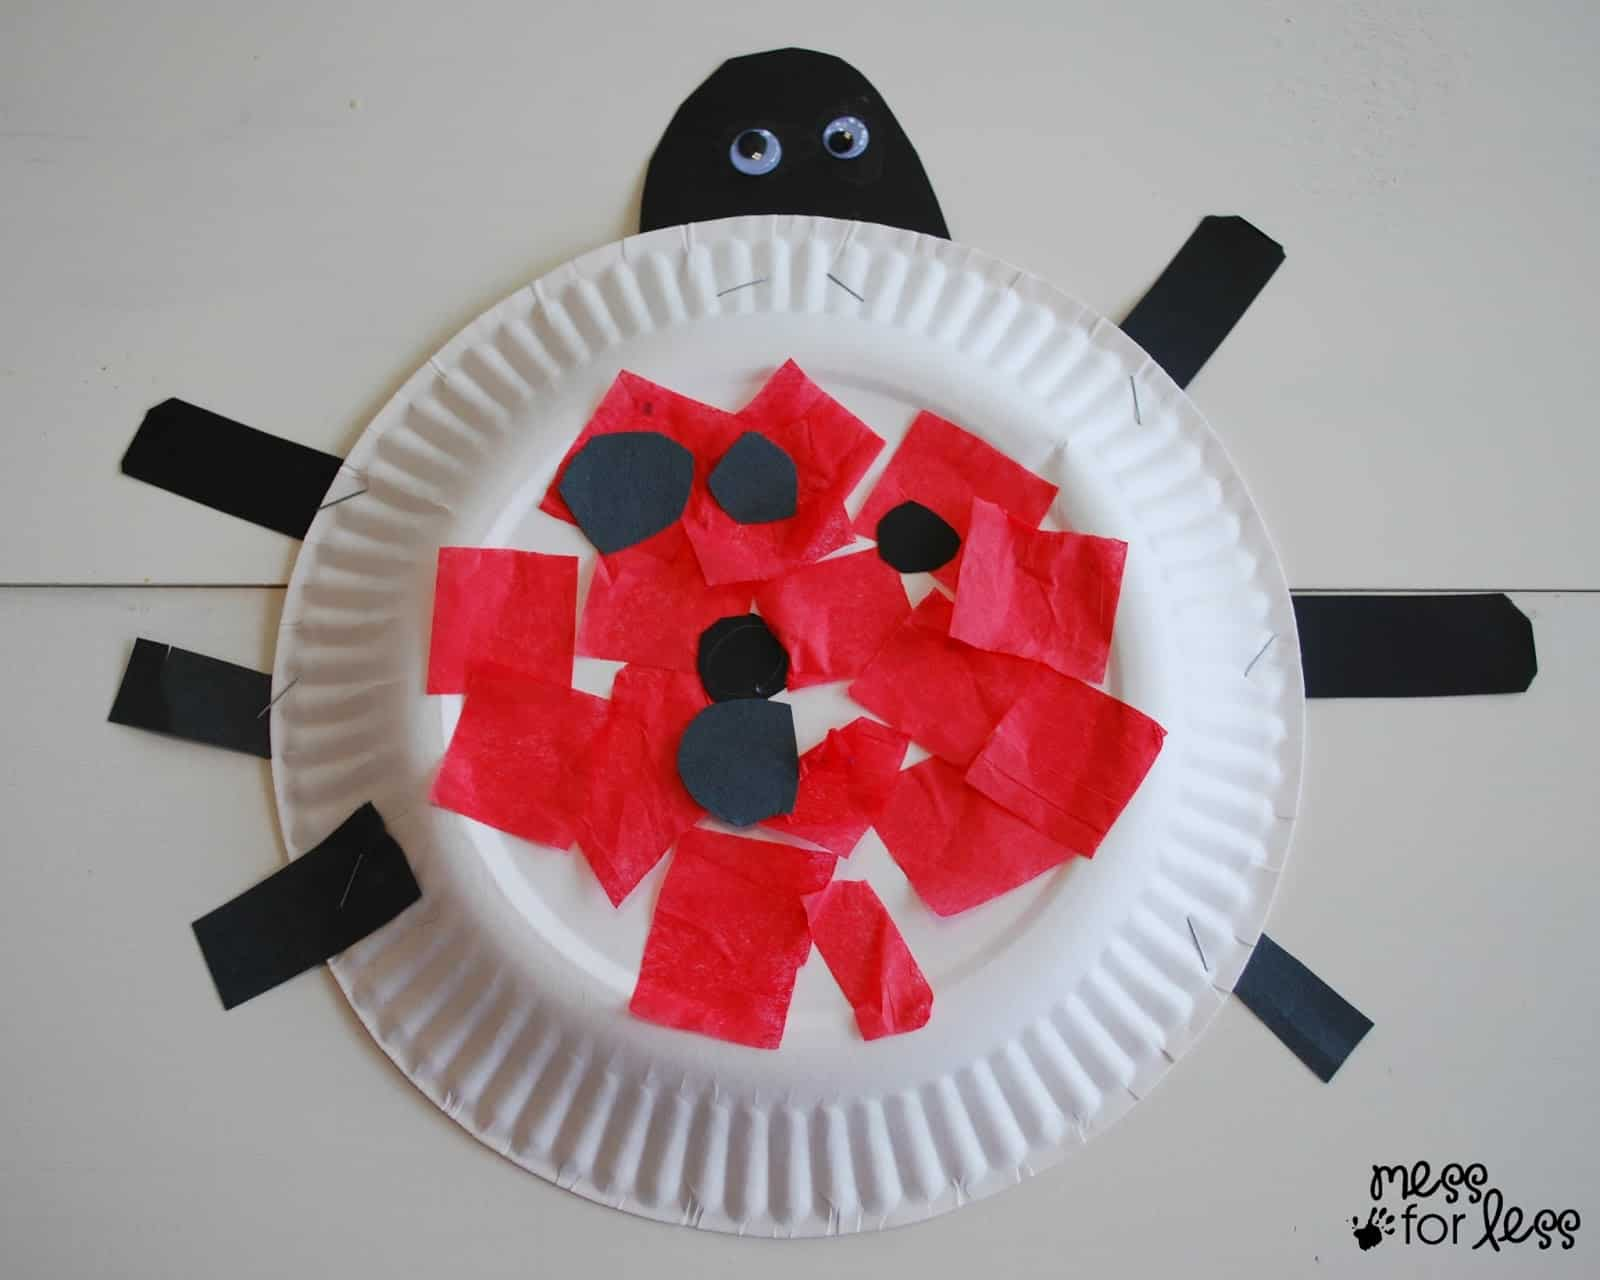 ladybug craft for kids & Paper Plate Ladybug Craft - Mess for Less